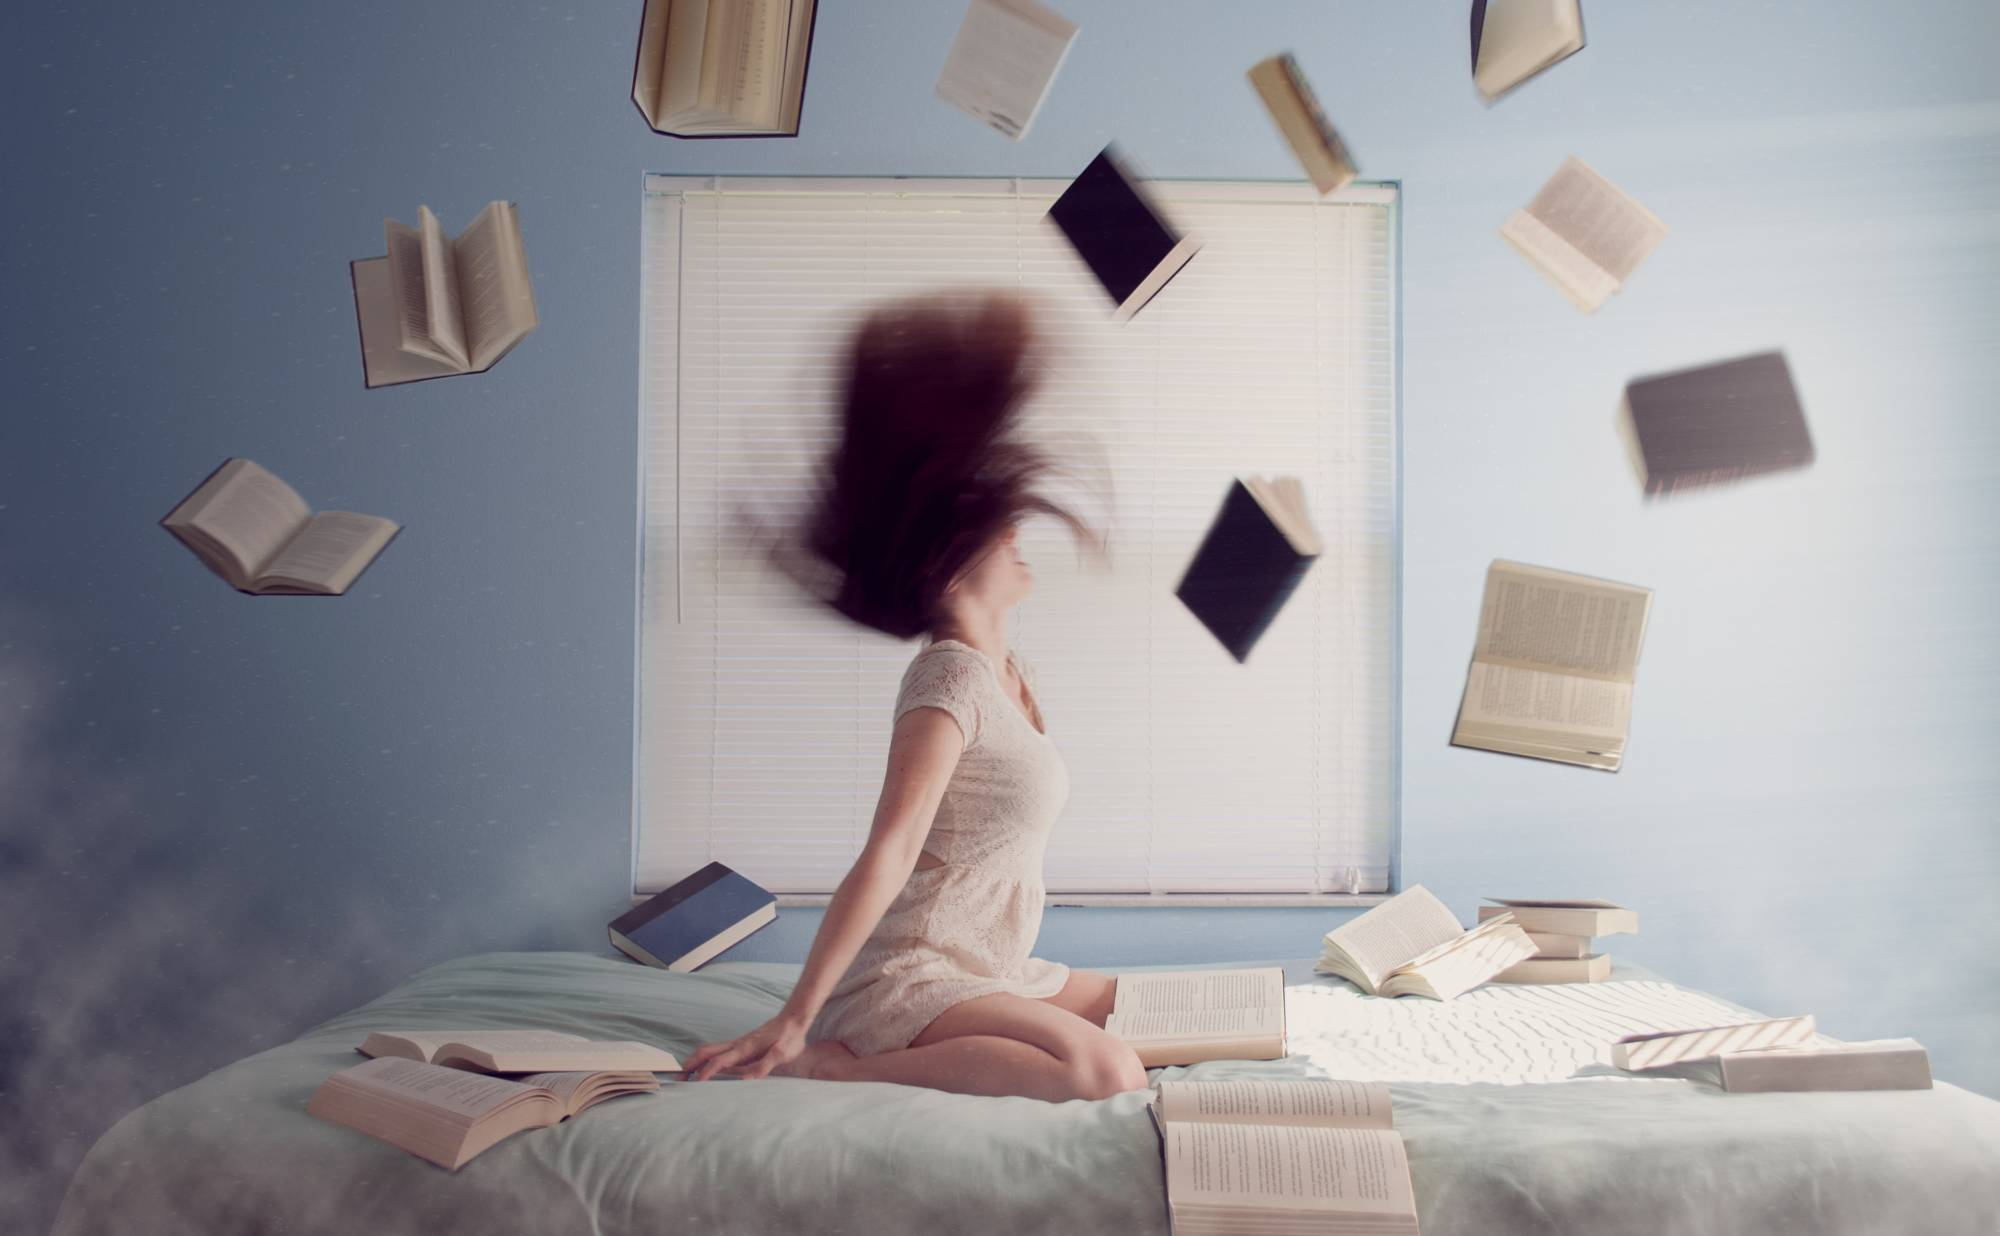 Photo of a woman in bed surrounded by books